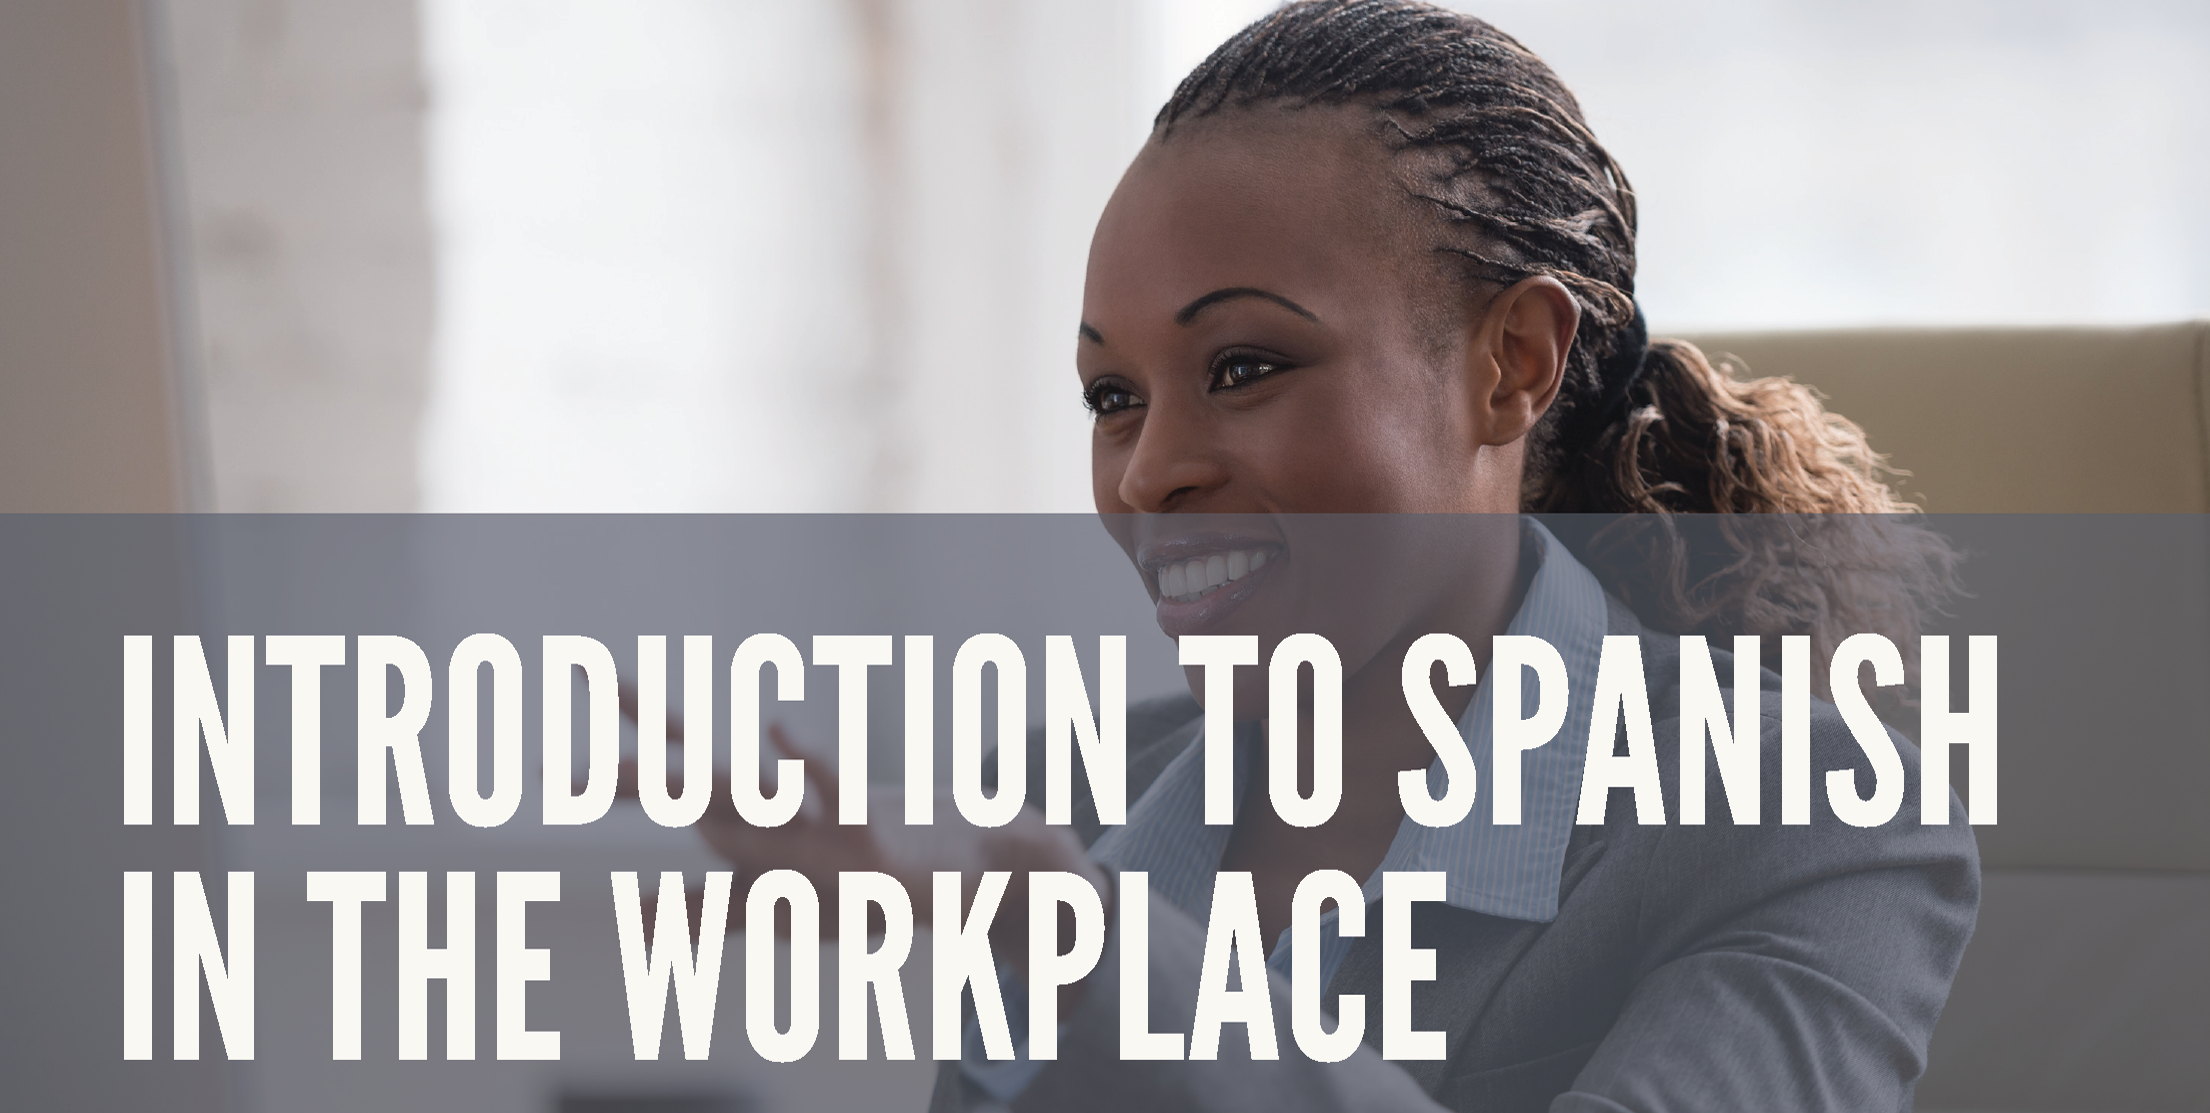 Introduction To Spanish In The Workplace - This 6-week program is designed for anyone wanting to learn to communicate conversationally in Spanish. No prior competency in the Spanish language is required. Ideal for co-workers in a diverse language environment as well as English-speaking supervisors of Hispanic employees. Participants will learn and practice words and phrases commonly used in the workplace. Course Duration: 6 weeks